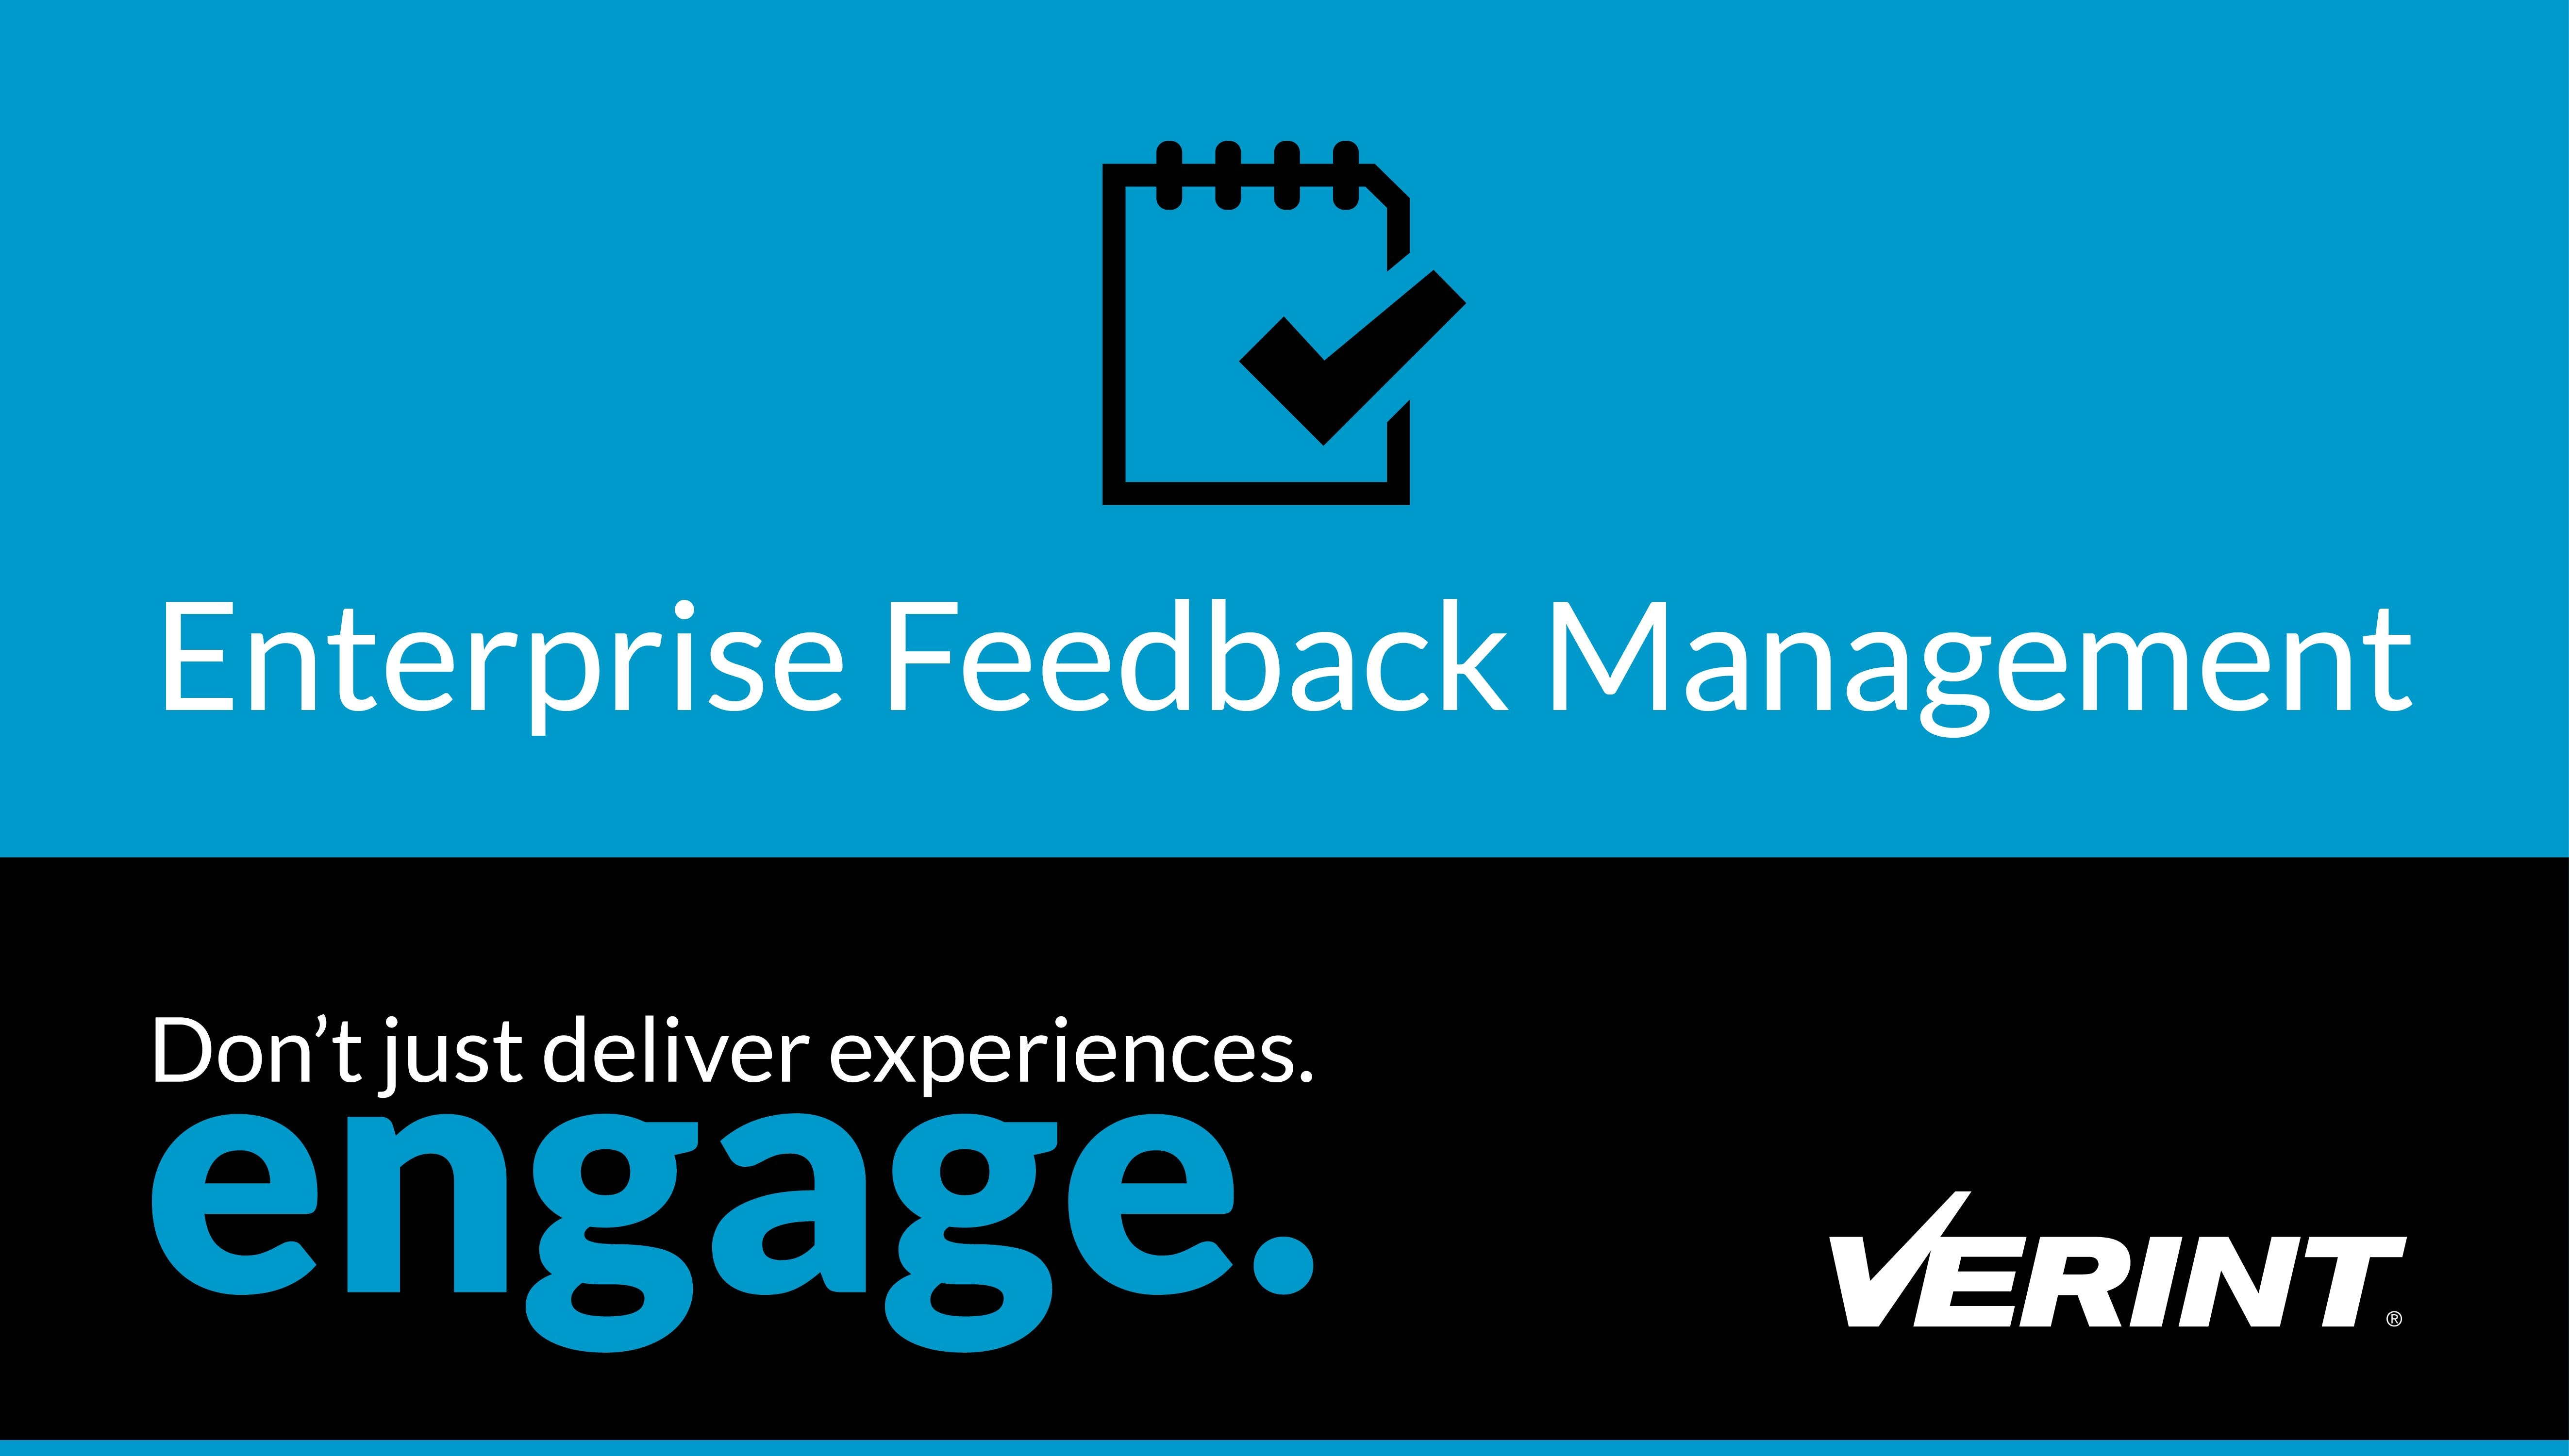 VWR Success Story - Enterprise Feedback Management